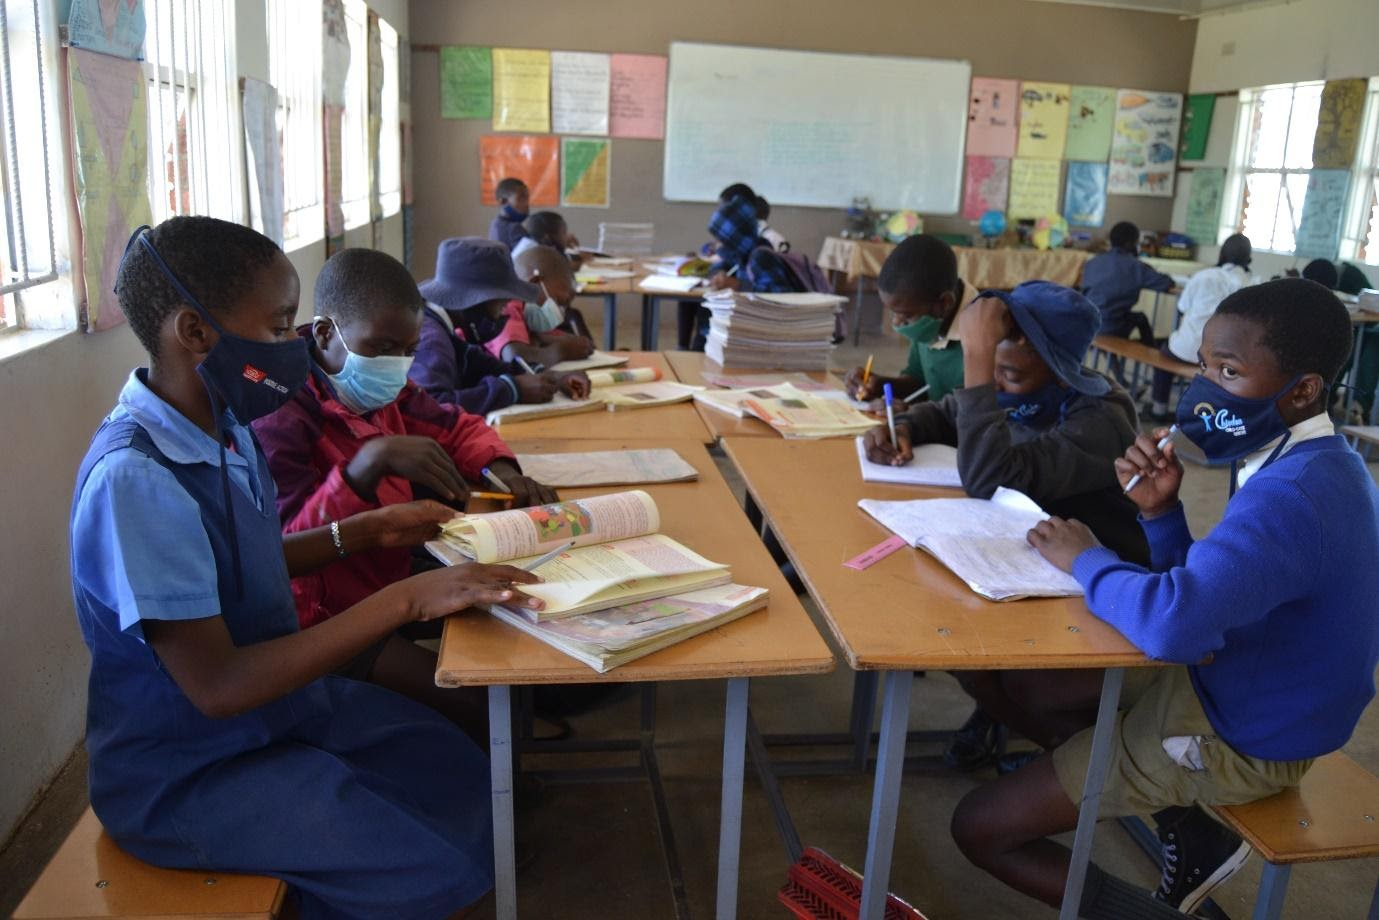 Chiedza: 'New normal' learning at the out-of-school programme in Harare